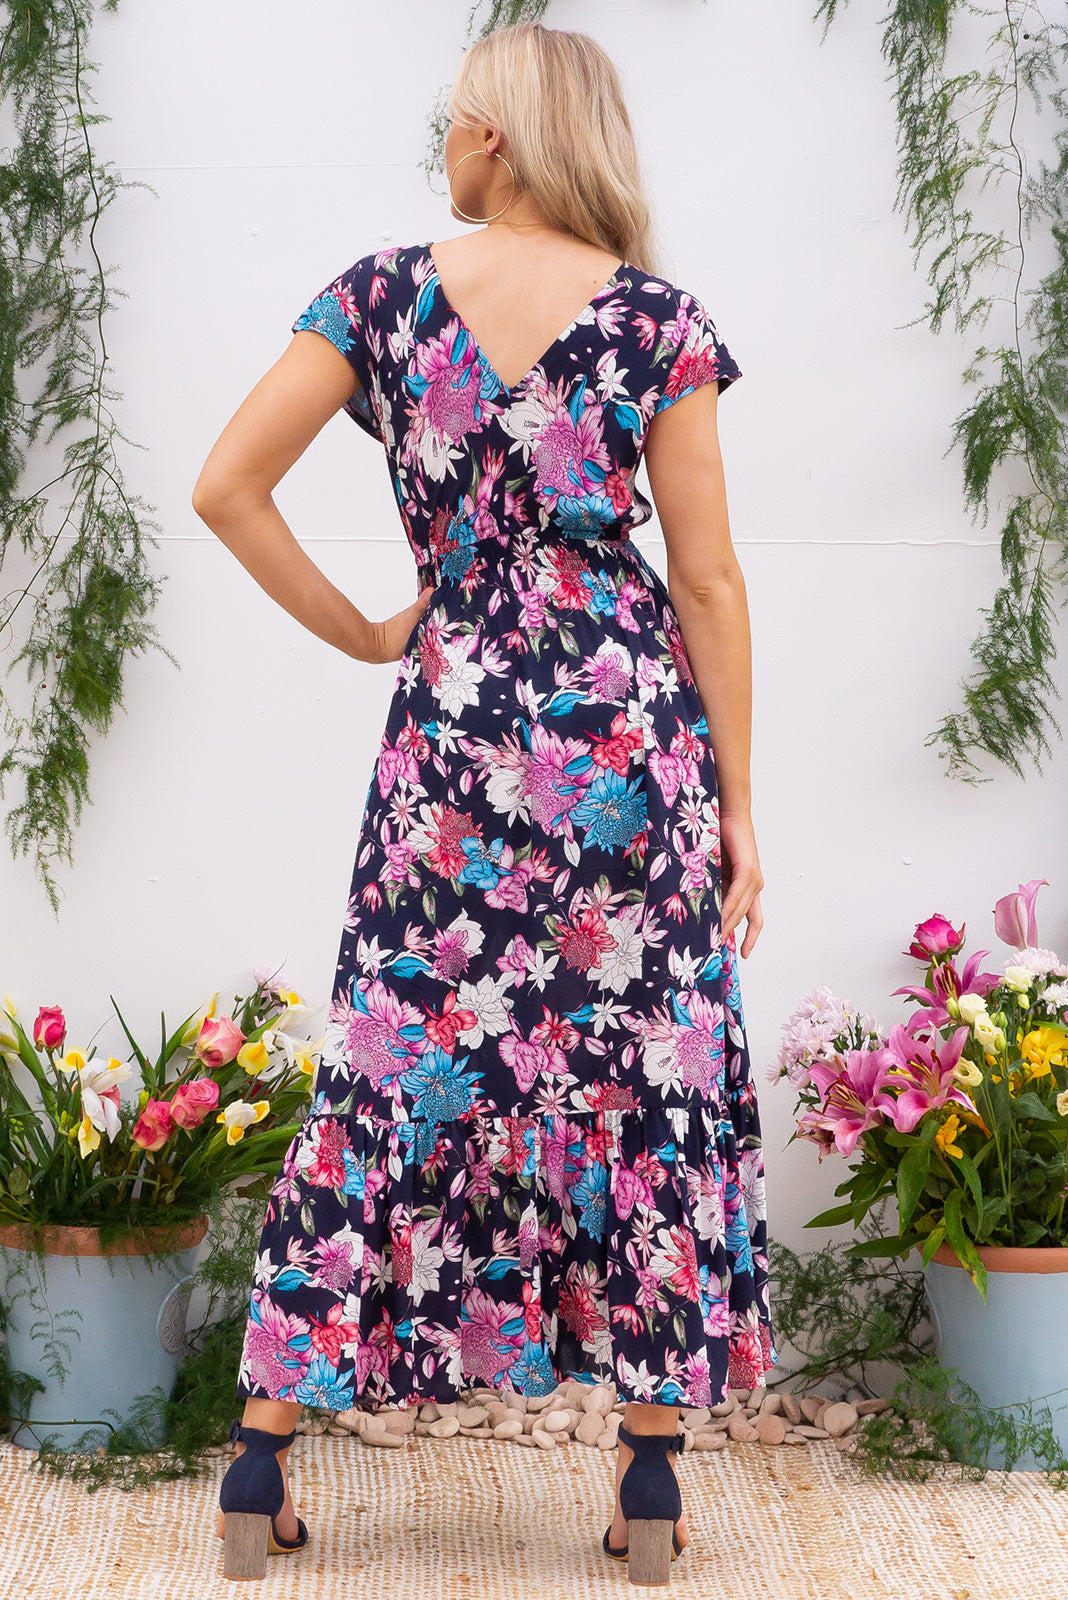 Nellie Arbour Ink Maxi Dress Maxi dress features elasticated empire line with a cap sleeve and deep v neck the fabric is a soft woven rayon in a bright navy based floral print